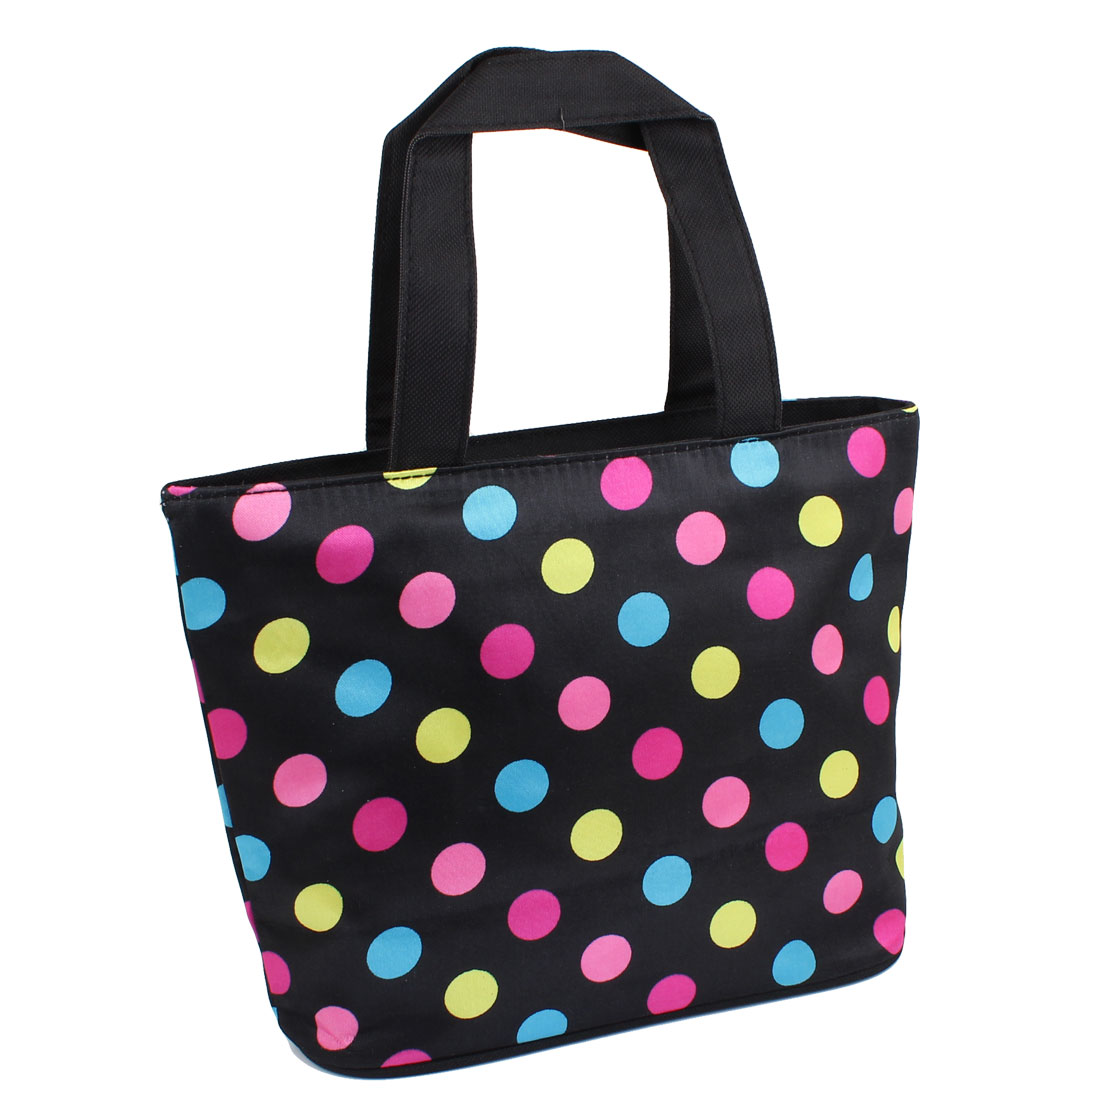 Zipper Closure Assorted Colors Dots Print Shopping Hand Bag Handbag Tote Black